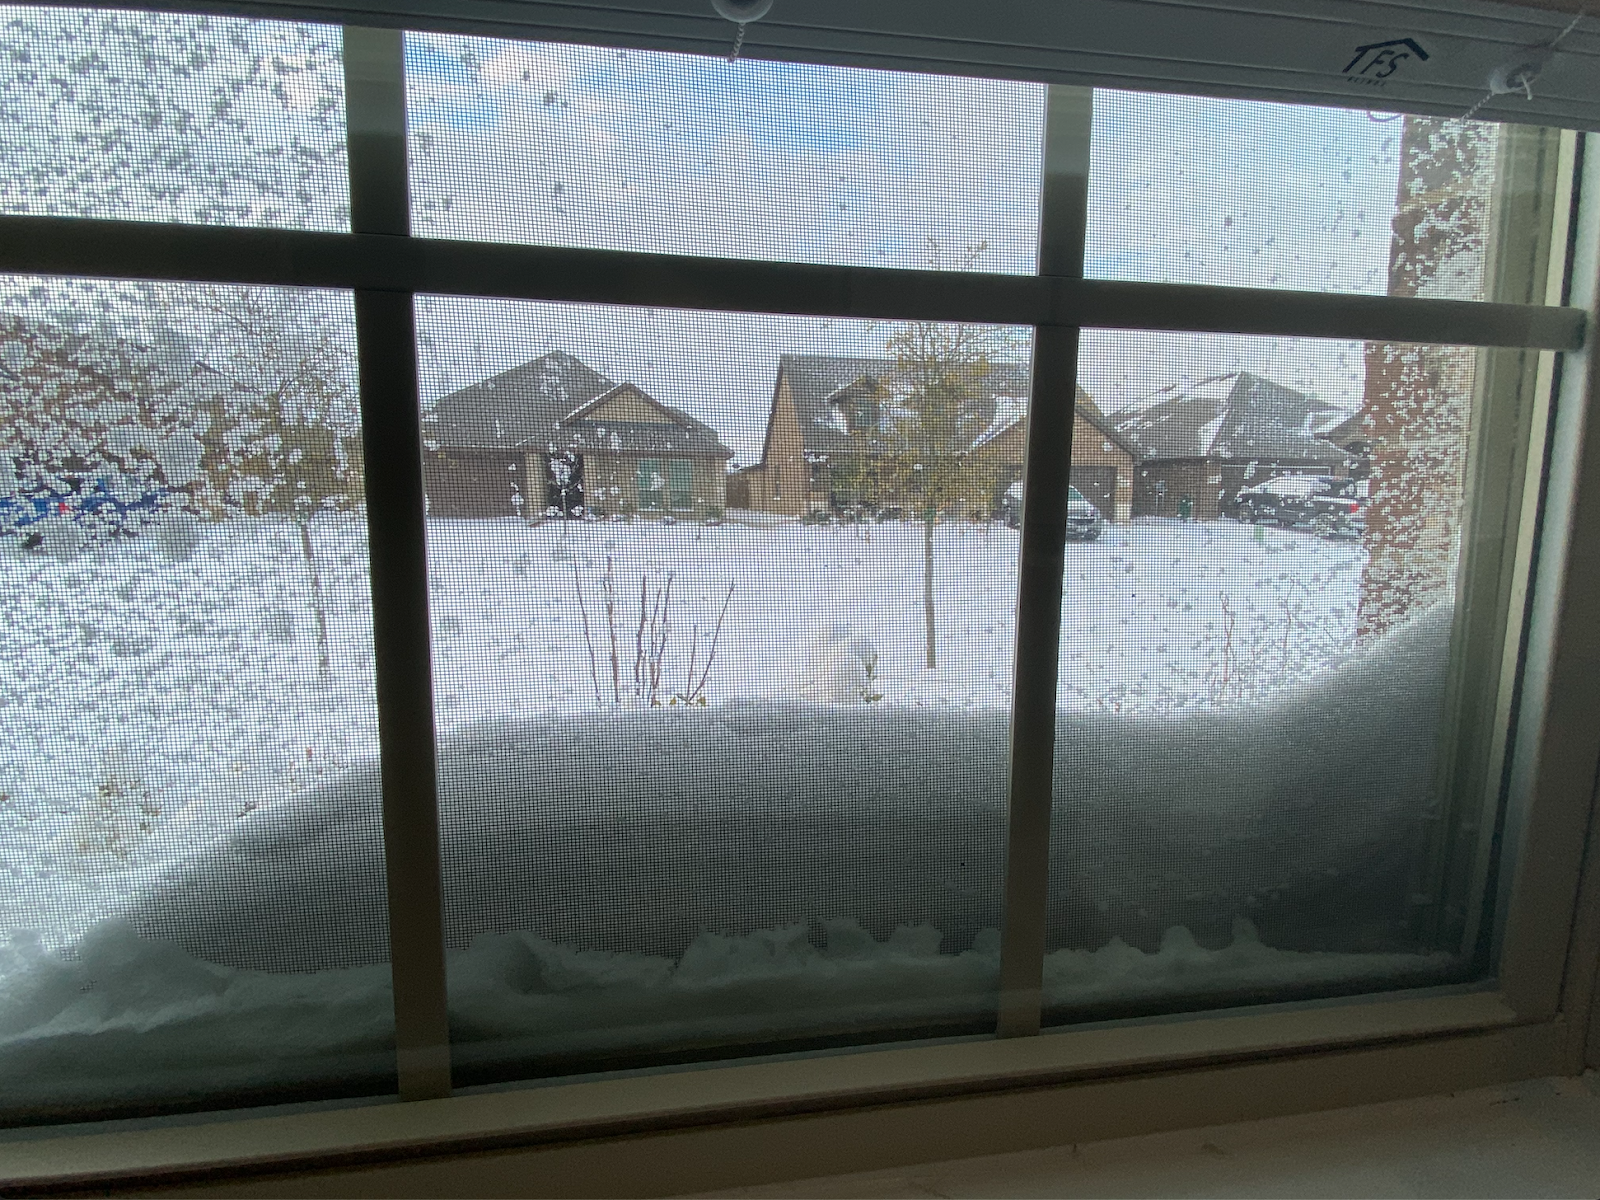 An image of snow piled up against a window in a suburban neighborhood